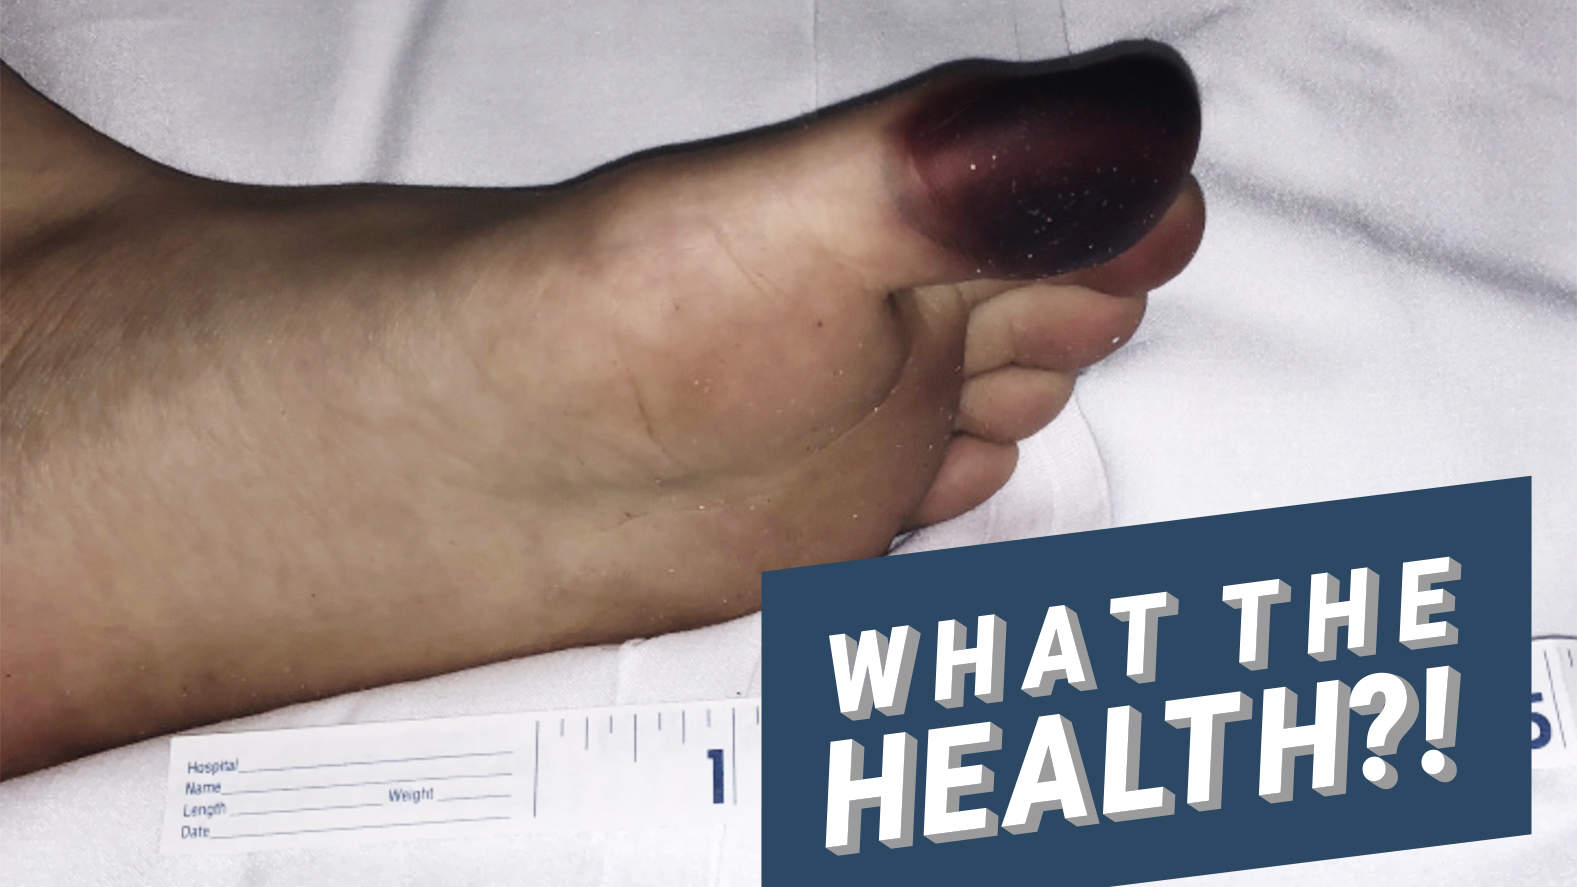 This Girl's Toe Turned Purple from Millipede Staining—Here's What That Means